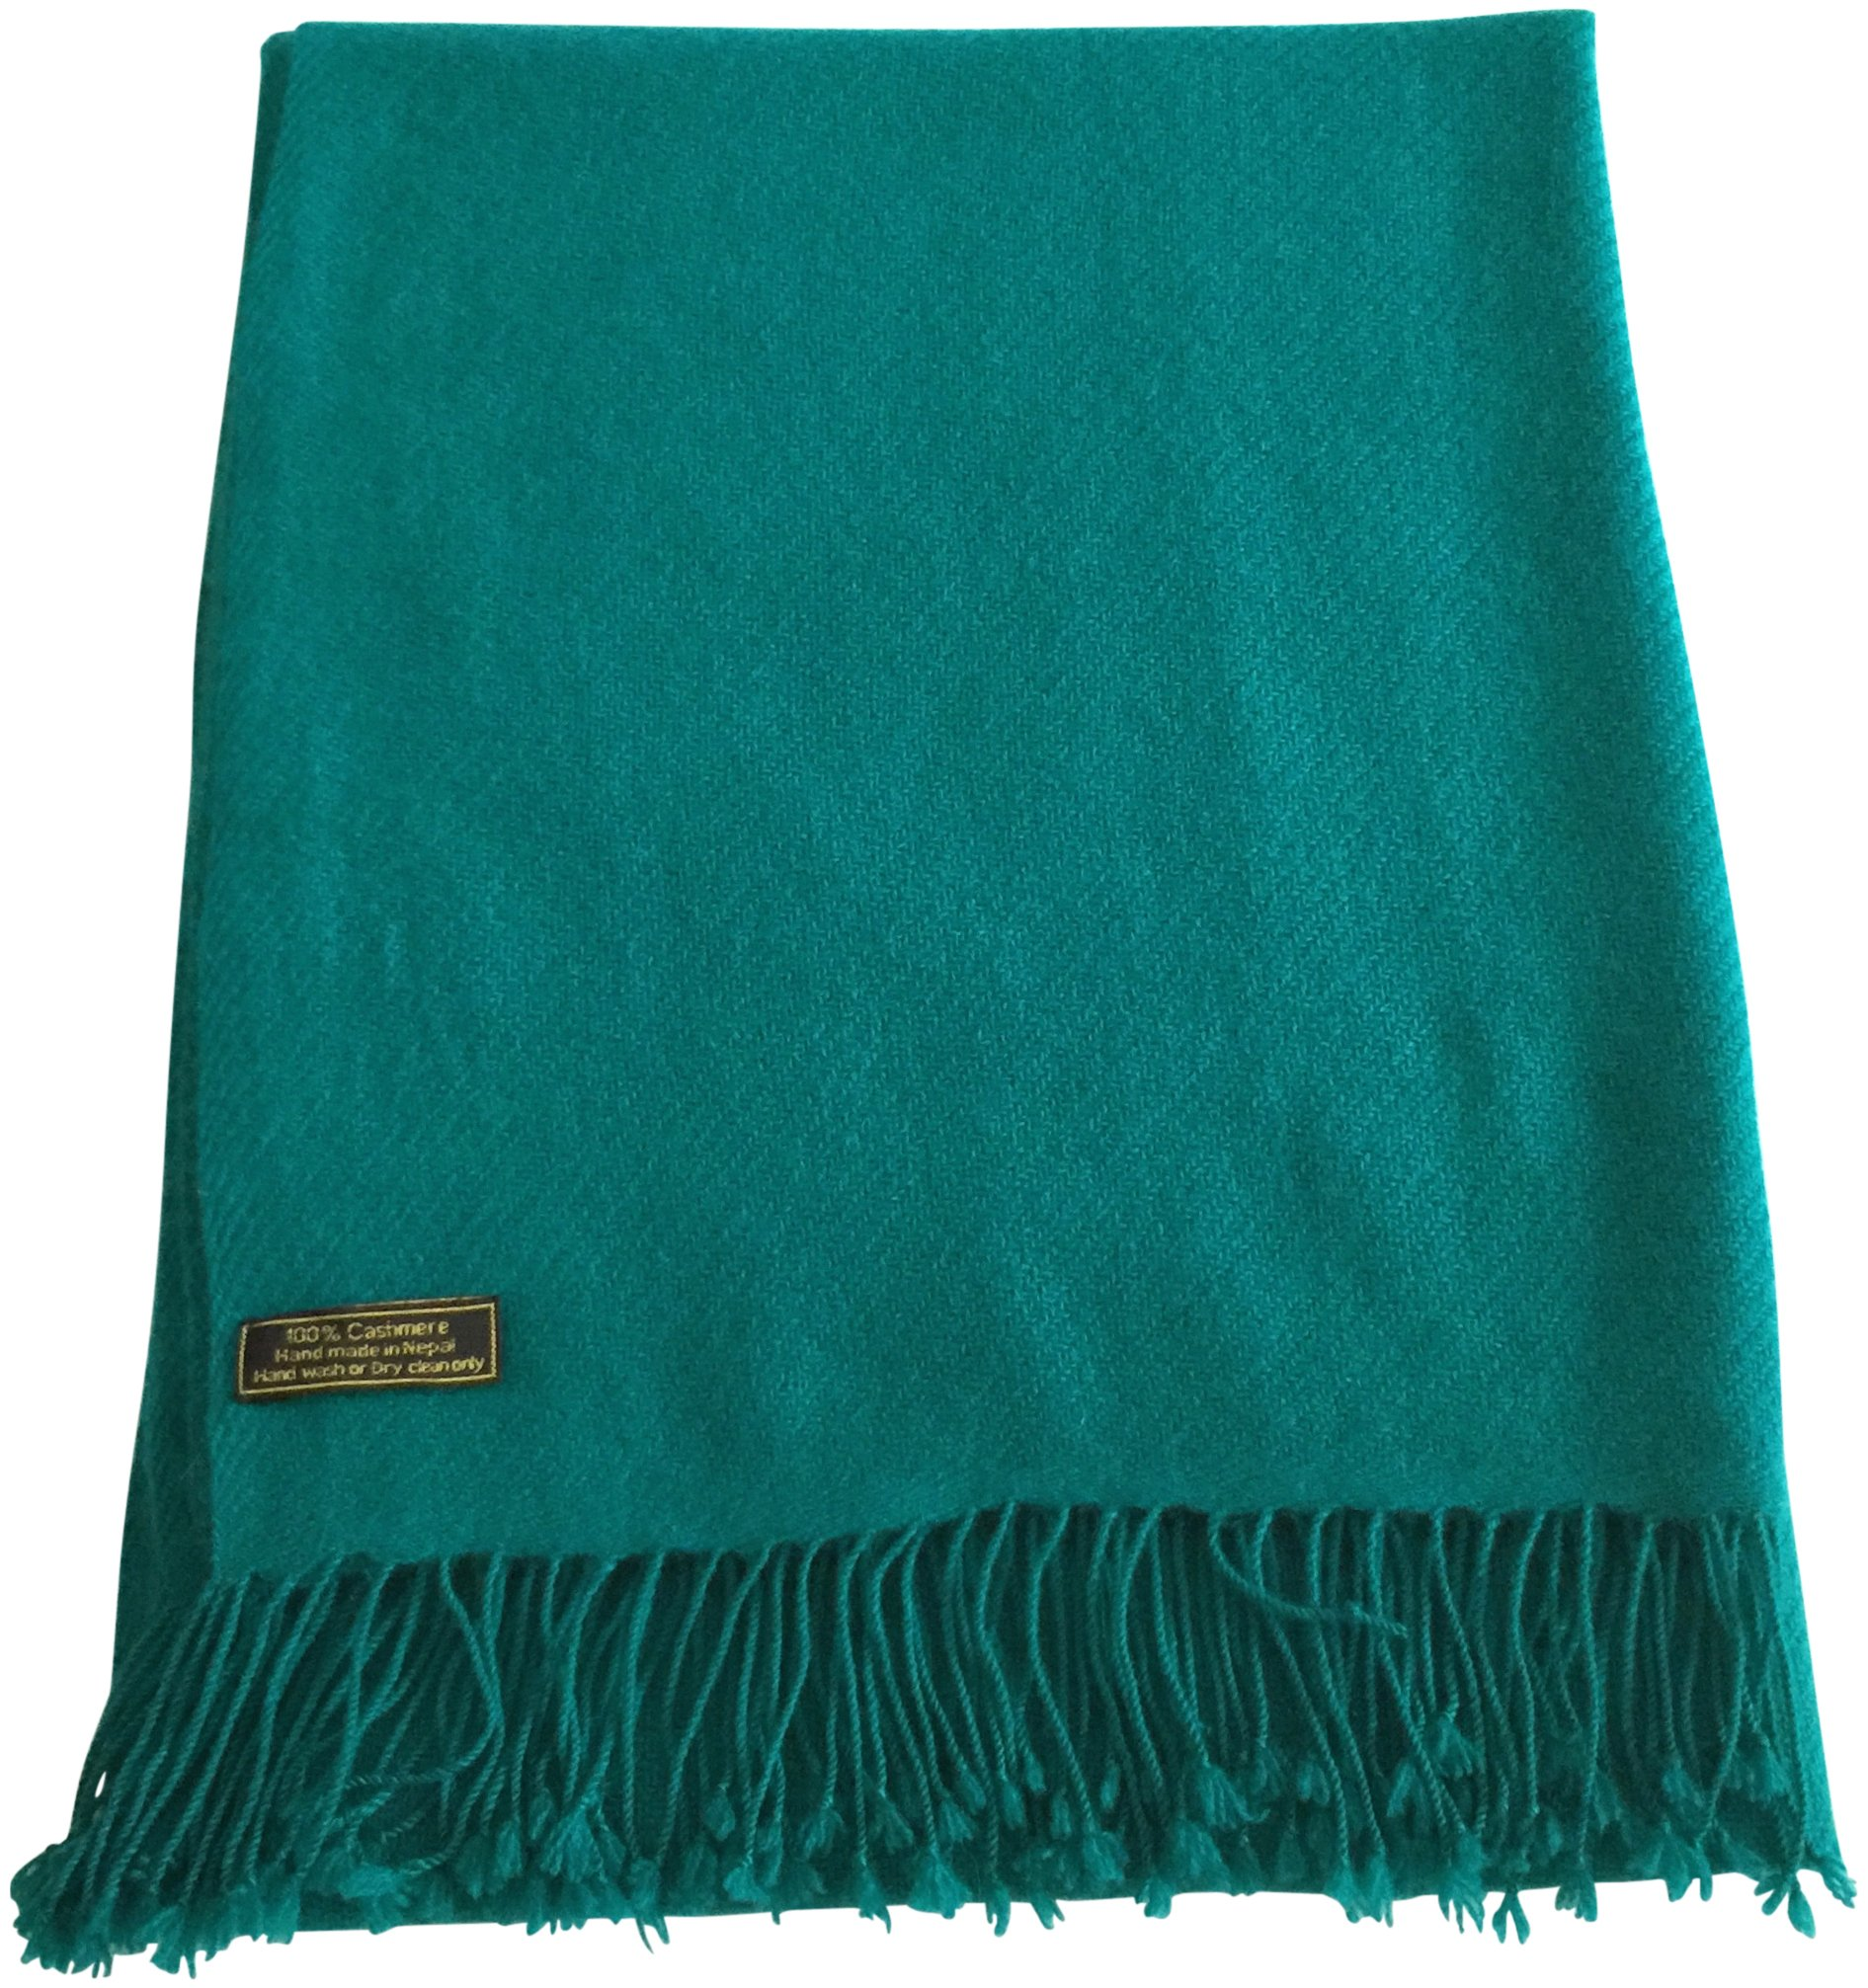 Jade Green High Grade 100% Cashmere Shawl Scarf Wrap Hand Made in Nepal NEW by CJ Apparel